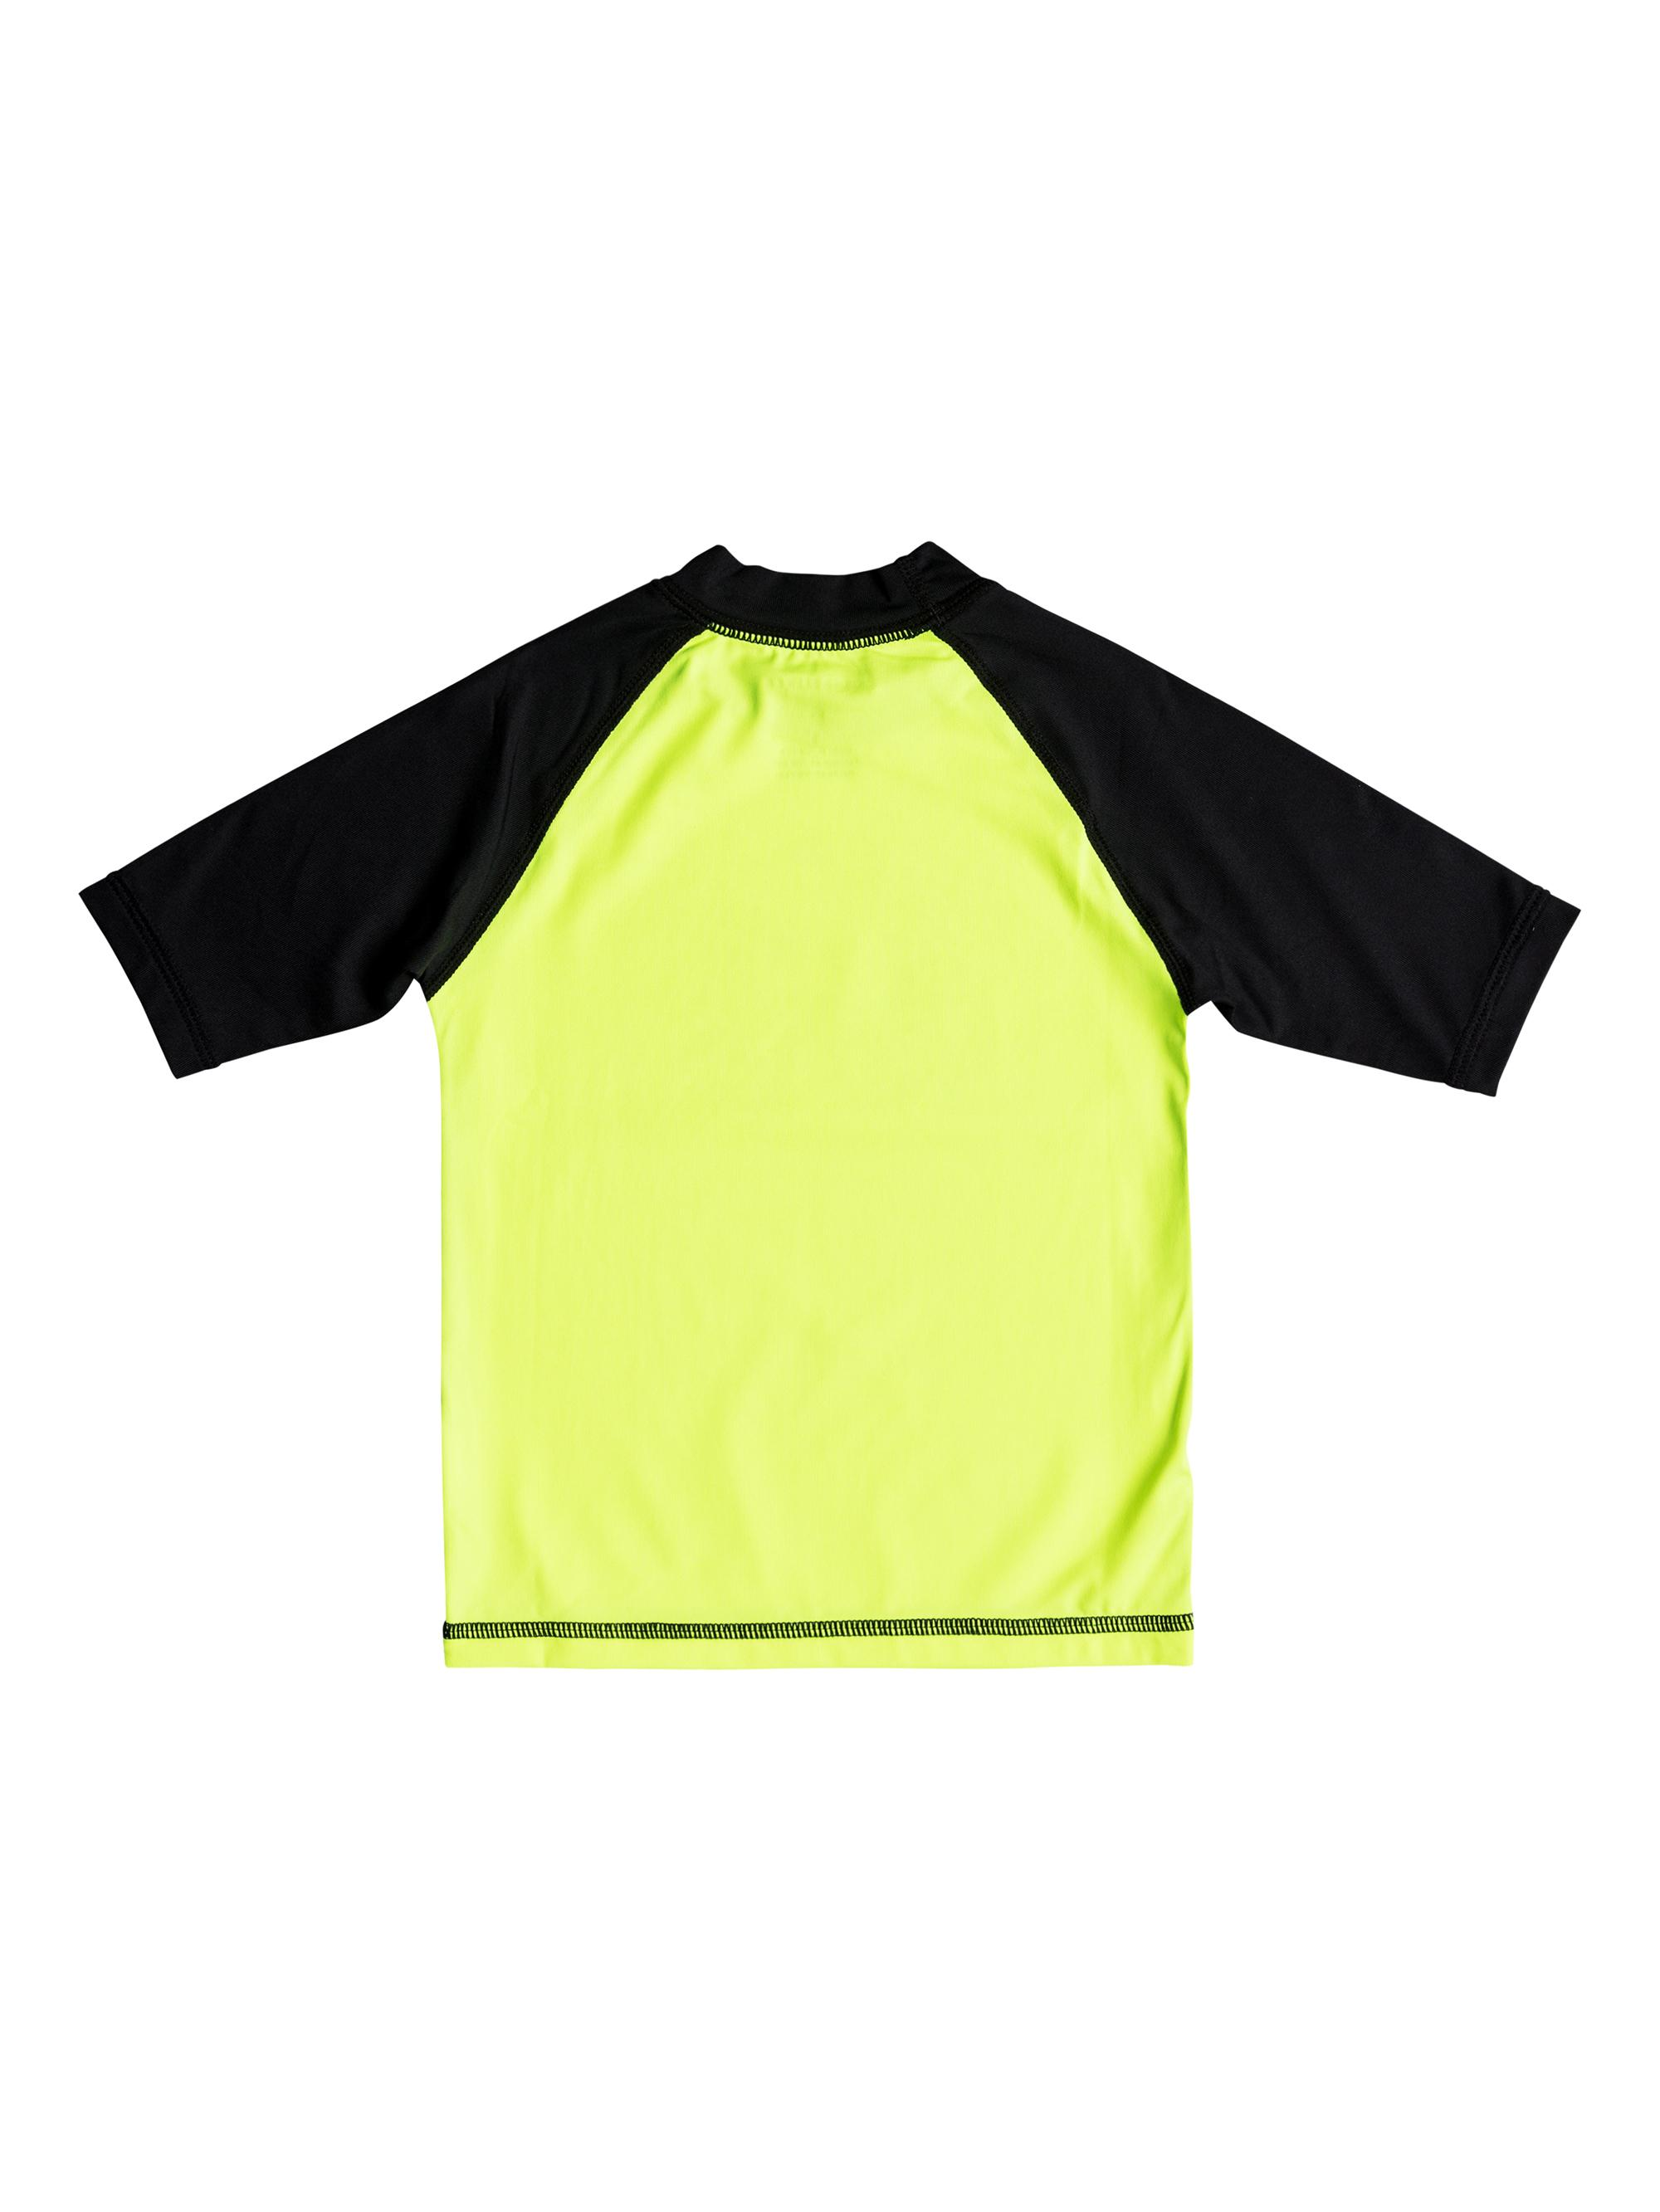 e4af13a180 Quiksilver™ Boys 2 - 7 Bubble Dream Short Sleeve UPF 50 Rashguard  Eqkwr03024 Safety Yellow/ Black 3